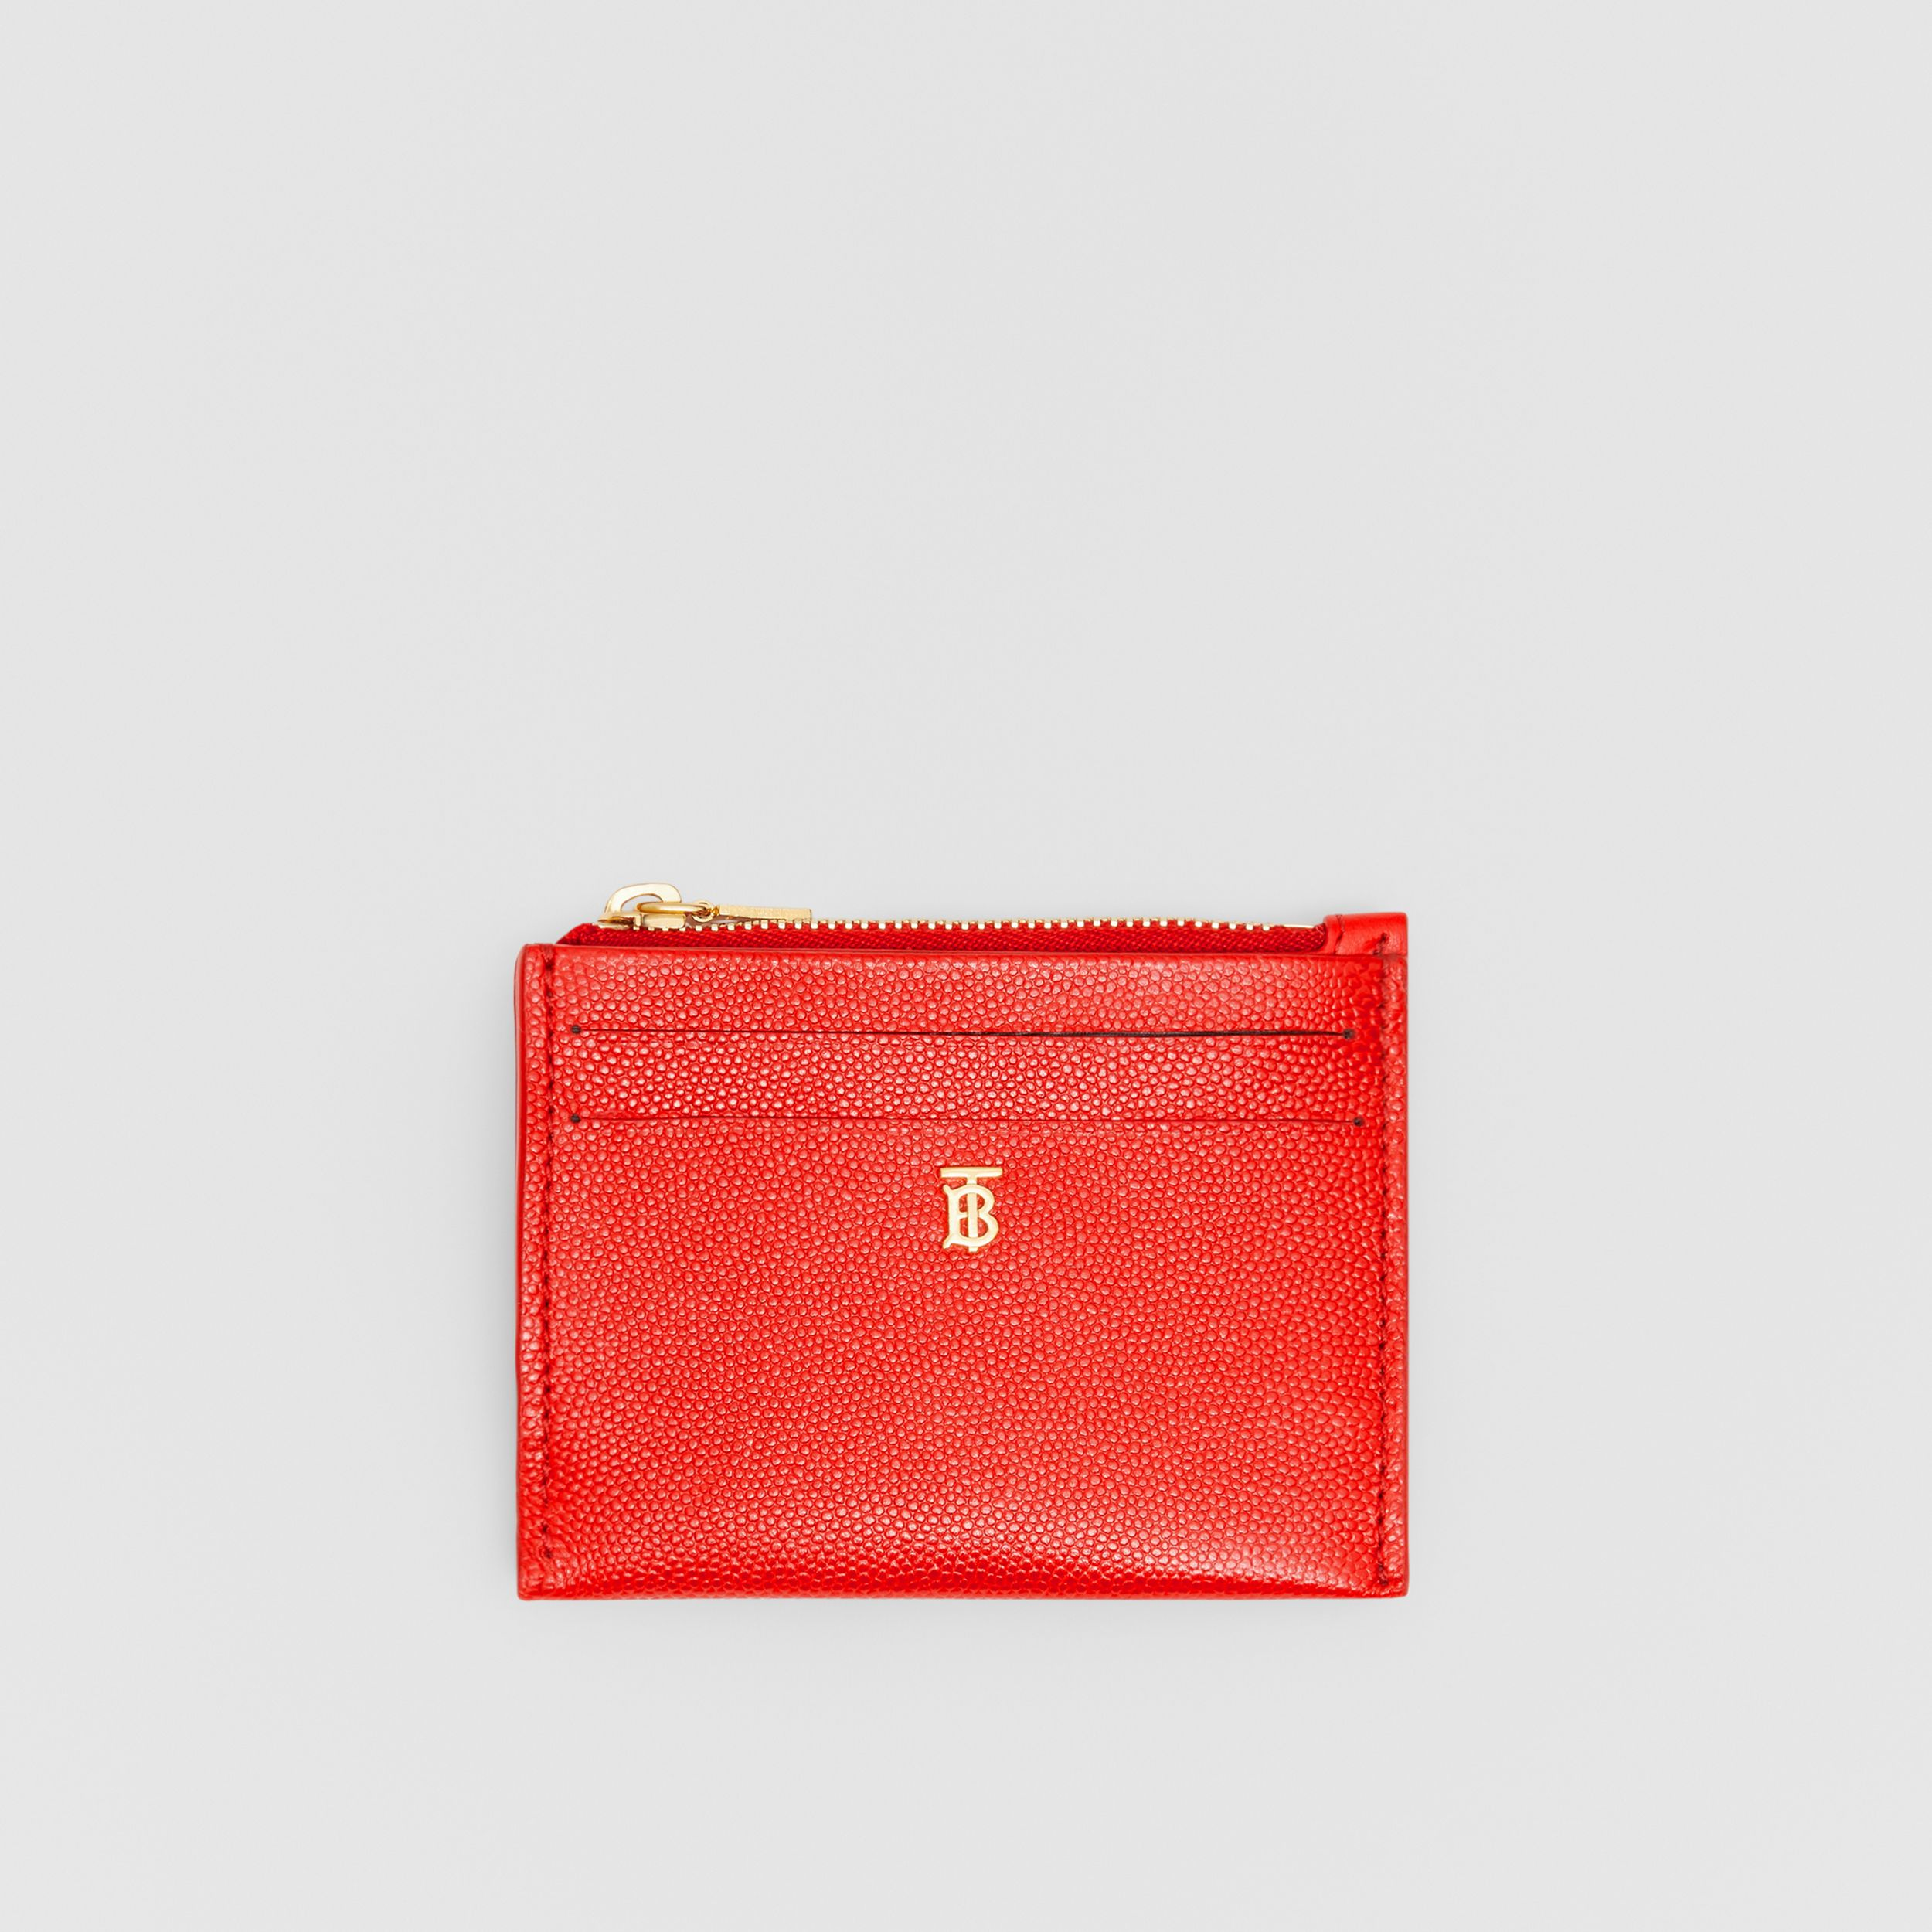 Monogram Motif Grainy Leather Zip Card Case in Bright Red - Women | Burberry - 1